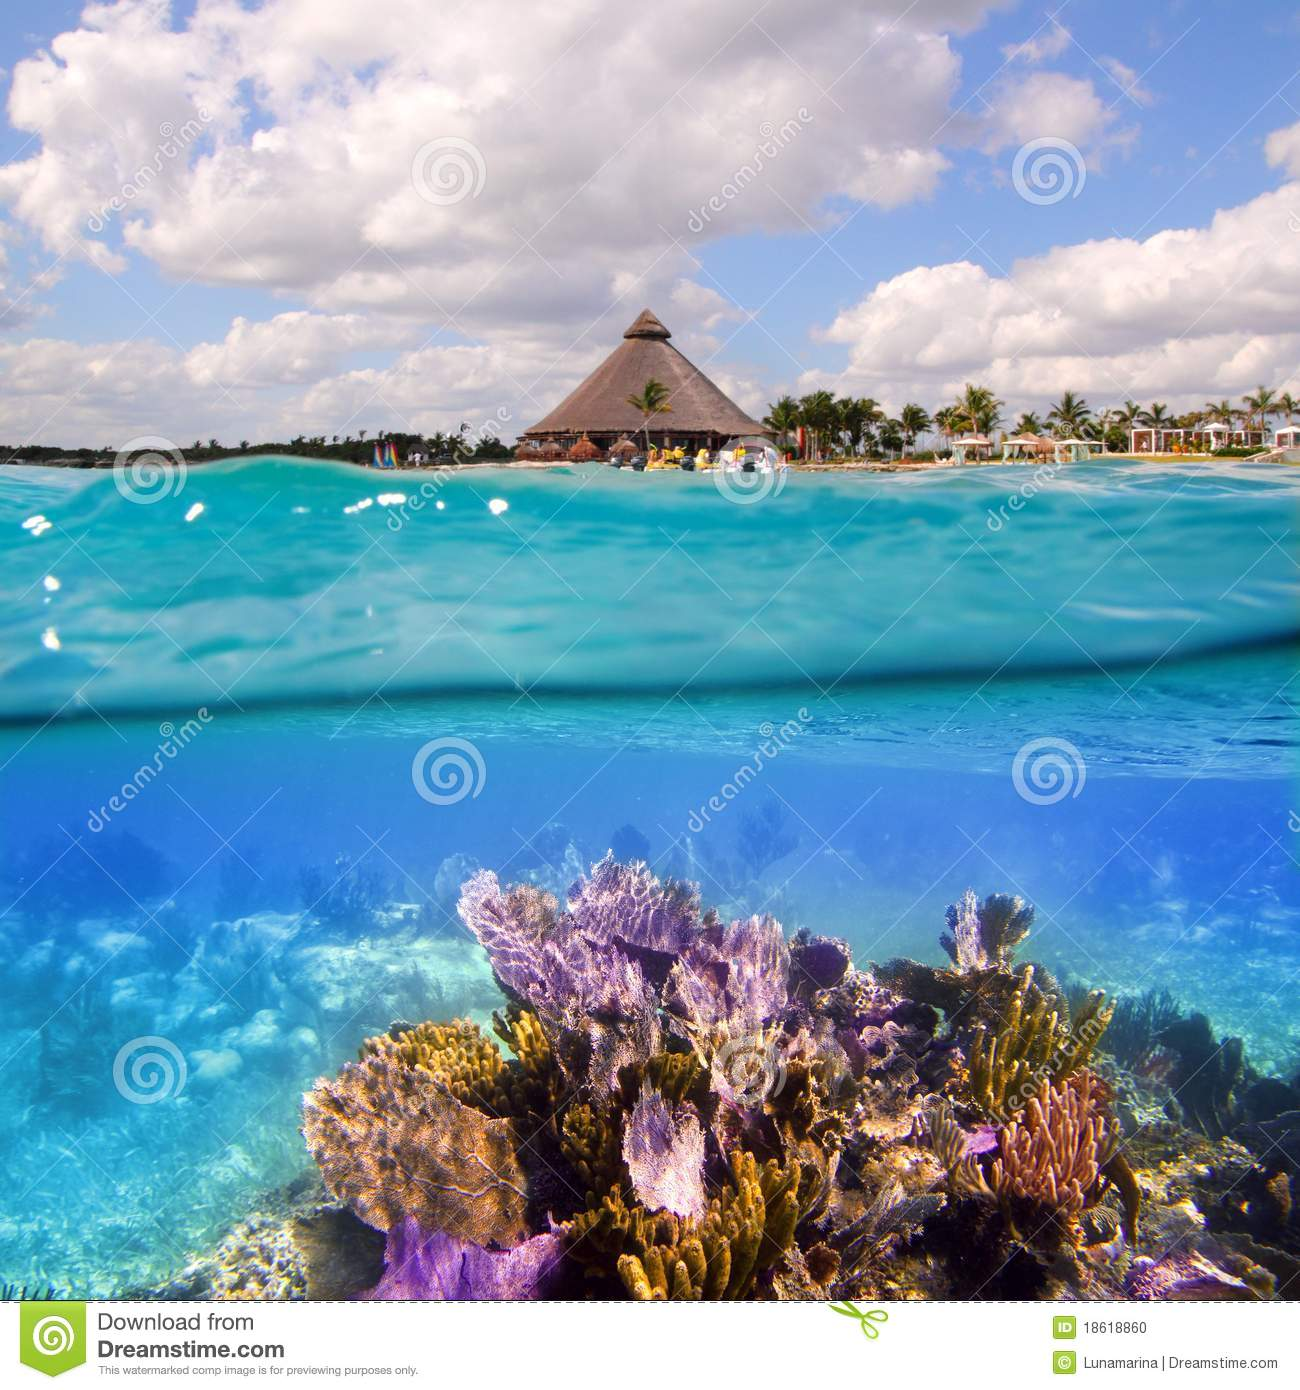 Coral Reef In Mayan Riviera Cancun Mexico Stock Photo